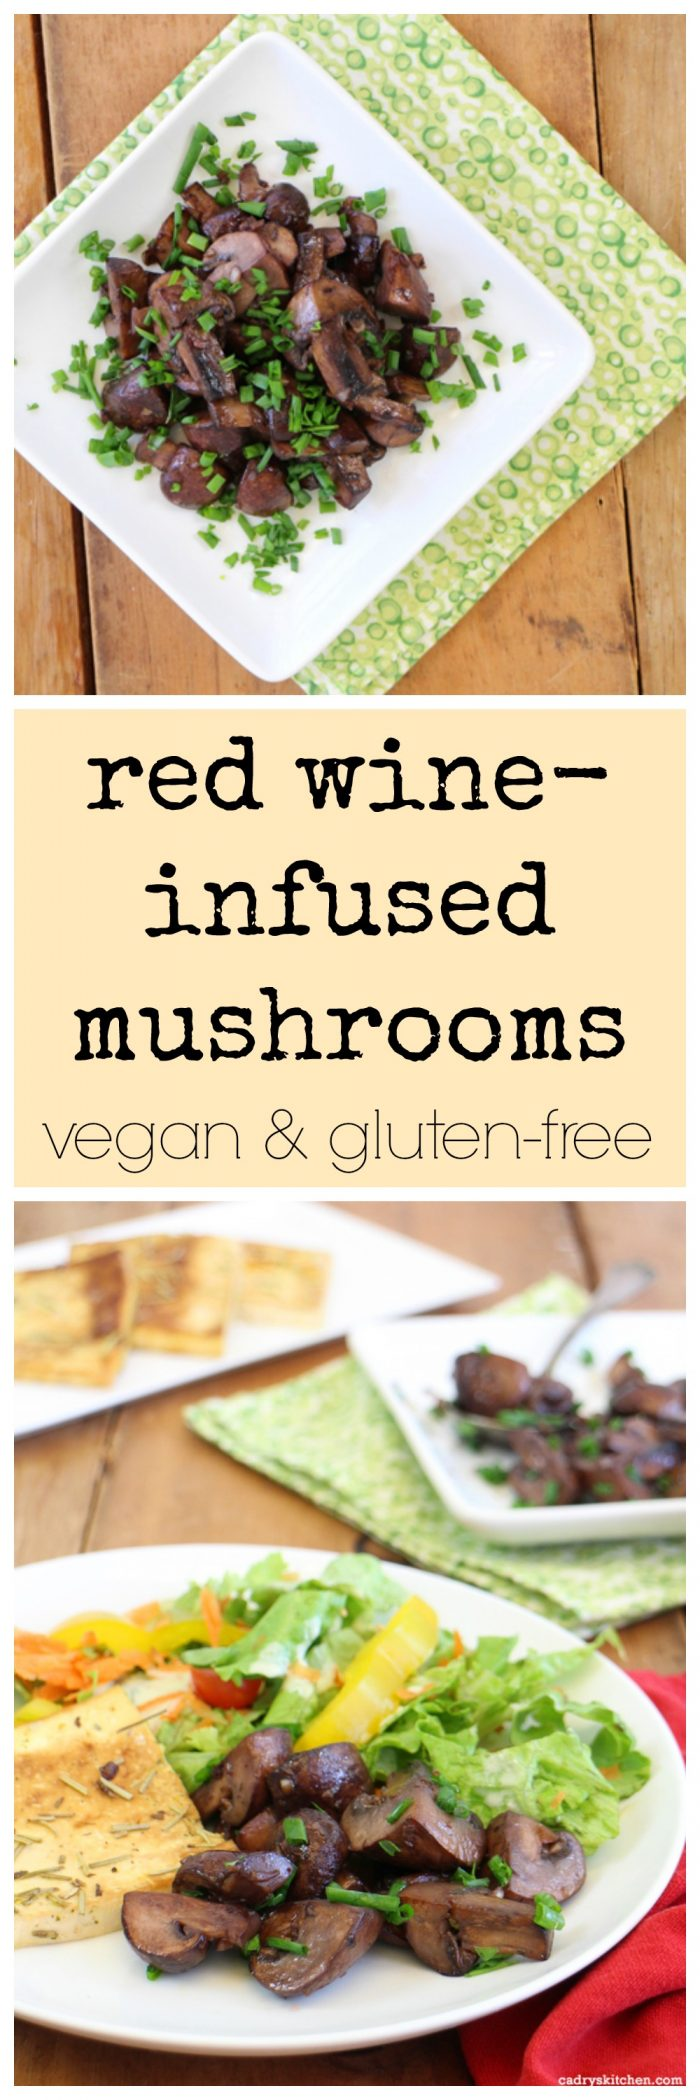 Red wine-infused mushrooms: A deliciously simple vegan side dish